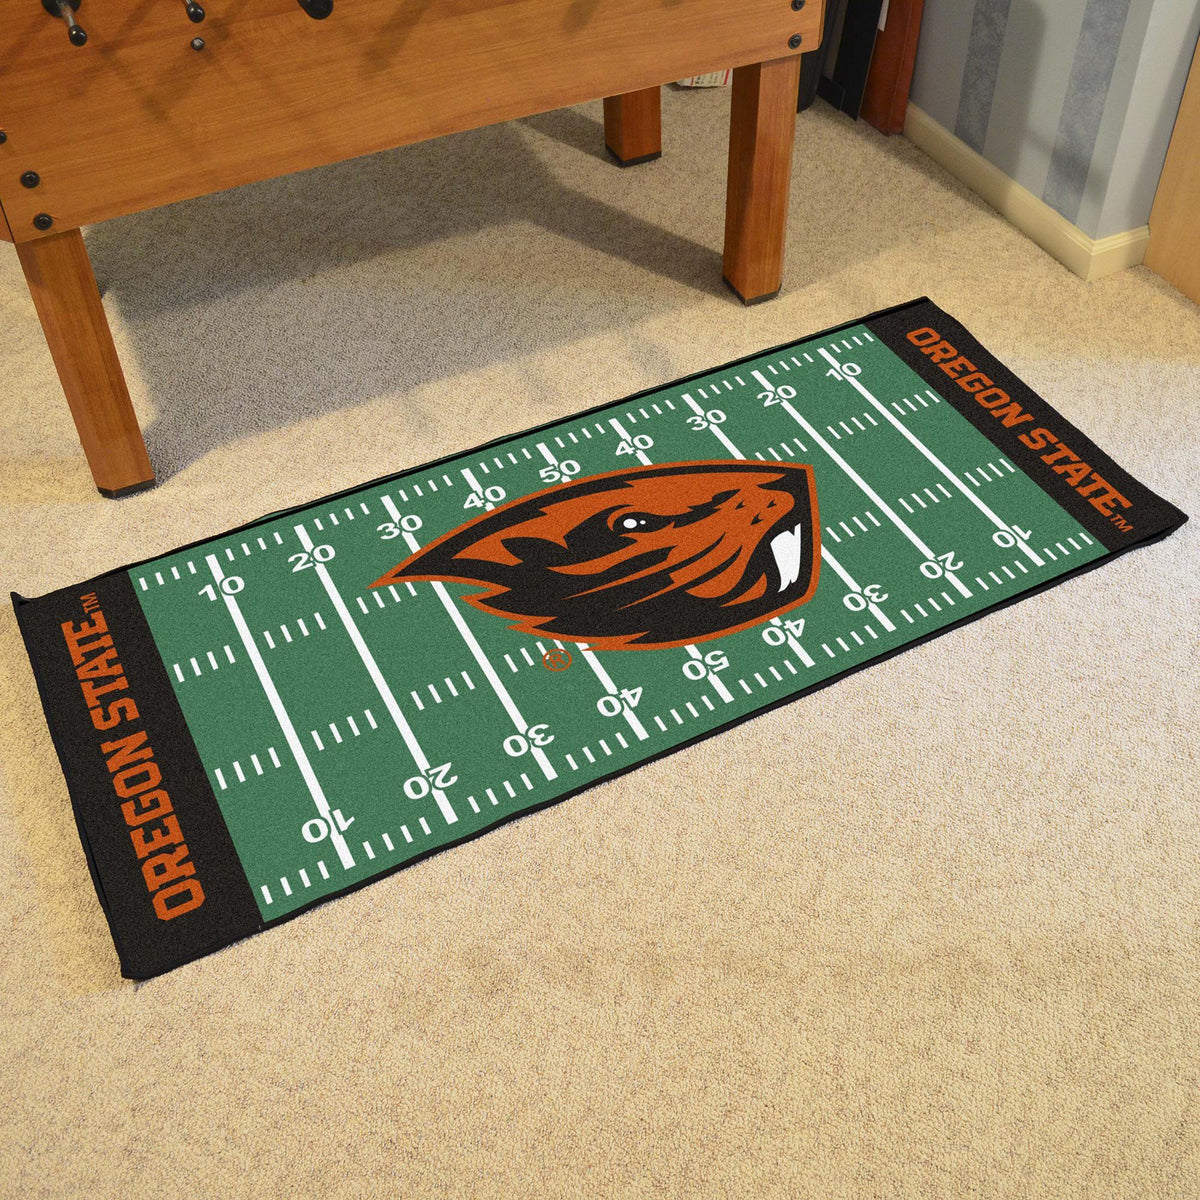 Collegiate - Football Field Runner Collegiate Mats, Rectangular Mats, Football Field Runner, Collegiate, Home Fan Mats Oregon State